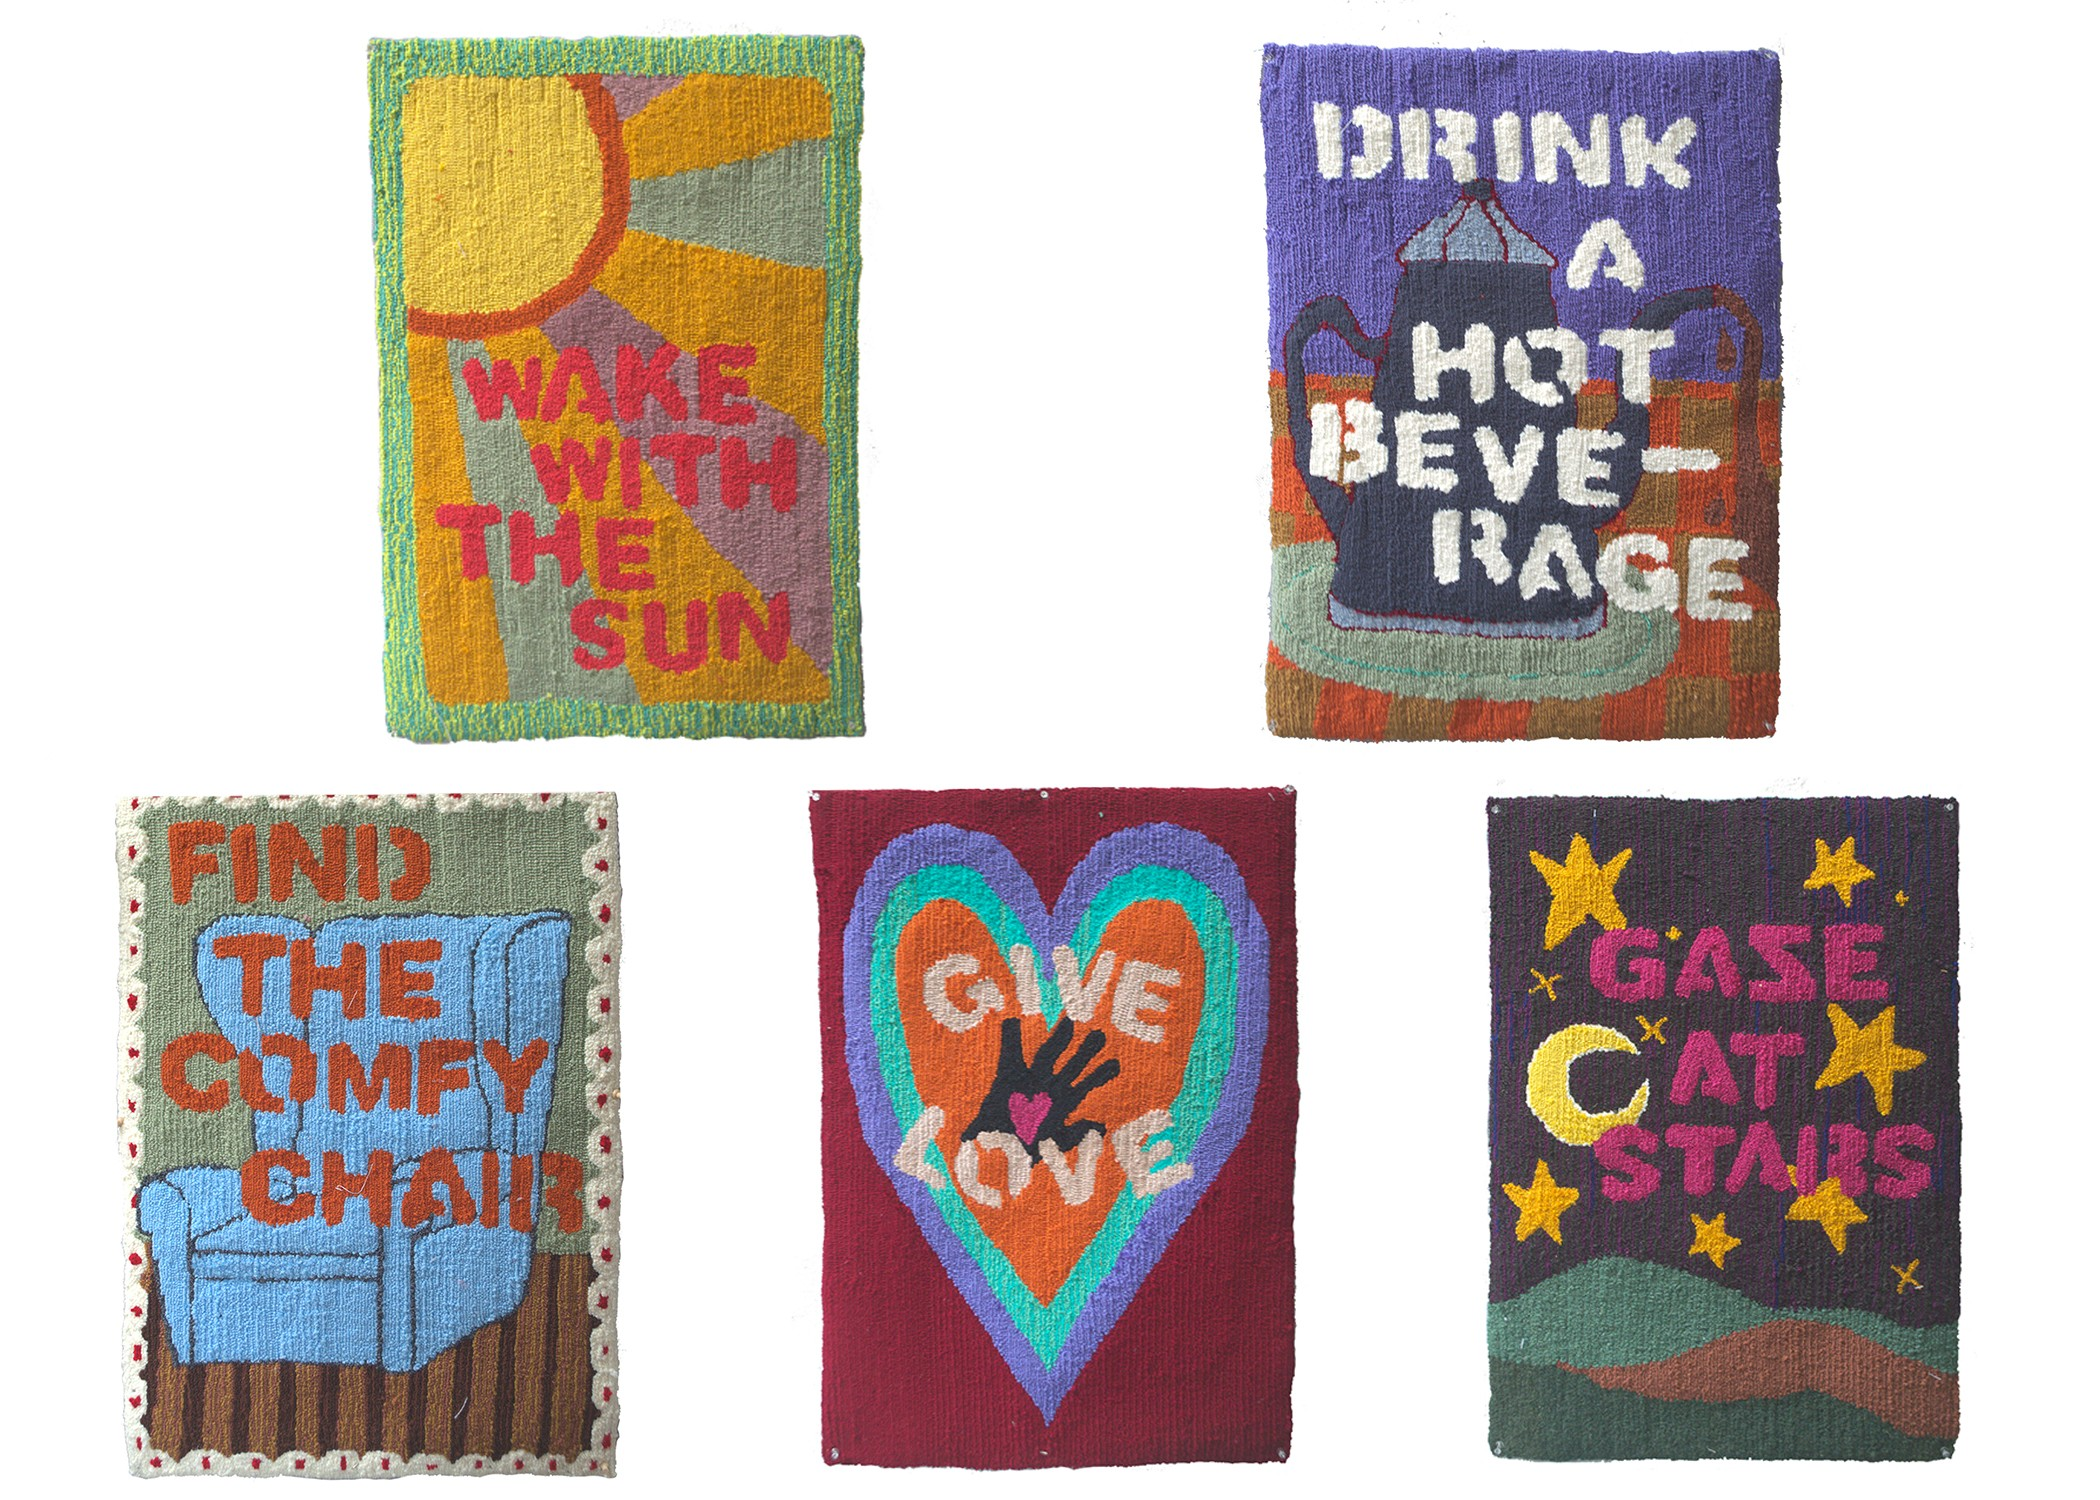 """Five loop pile rugs shown against a white background. Each rug, in simple font, tells viewers to """"wake with the sun,"""" """"drink a hot beverage,"""" """"find the comfy chair,"""" """"give love,"""" or """"gaze at stars."""""""